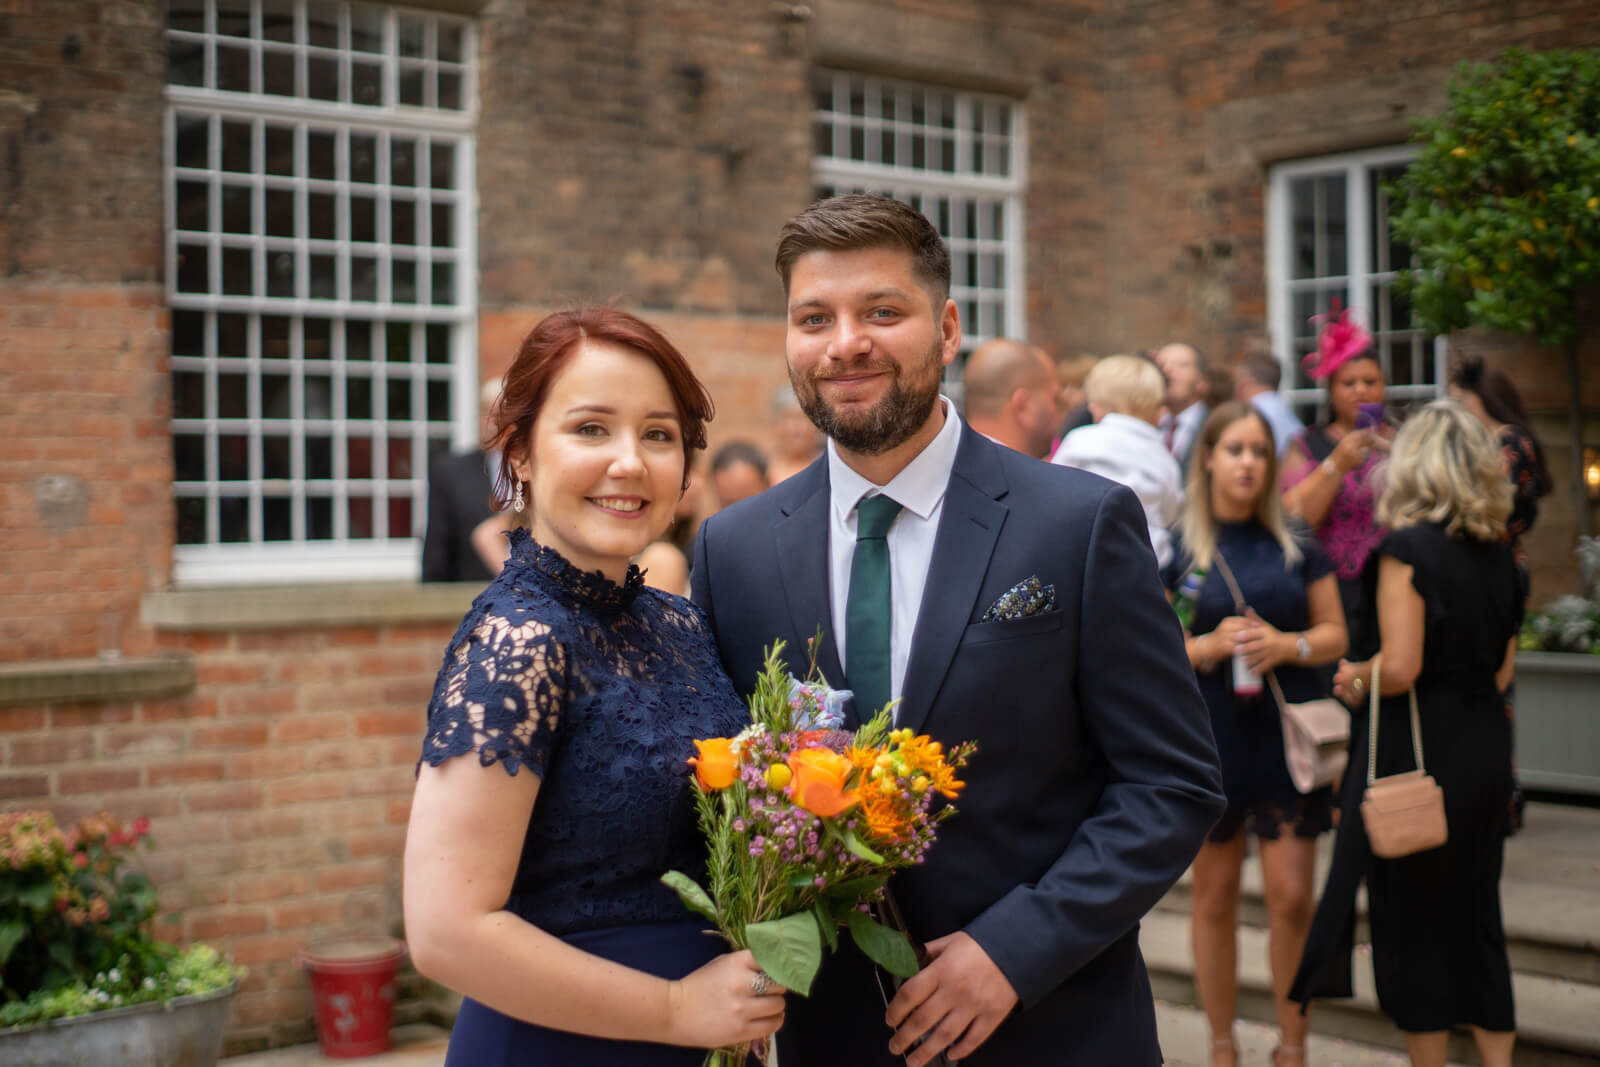 Bridesmaid and her partner in navy pose with a colourful bouquet